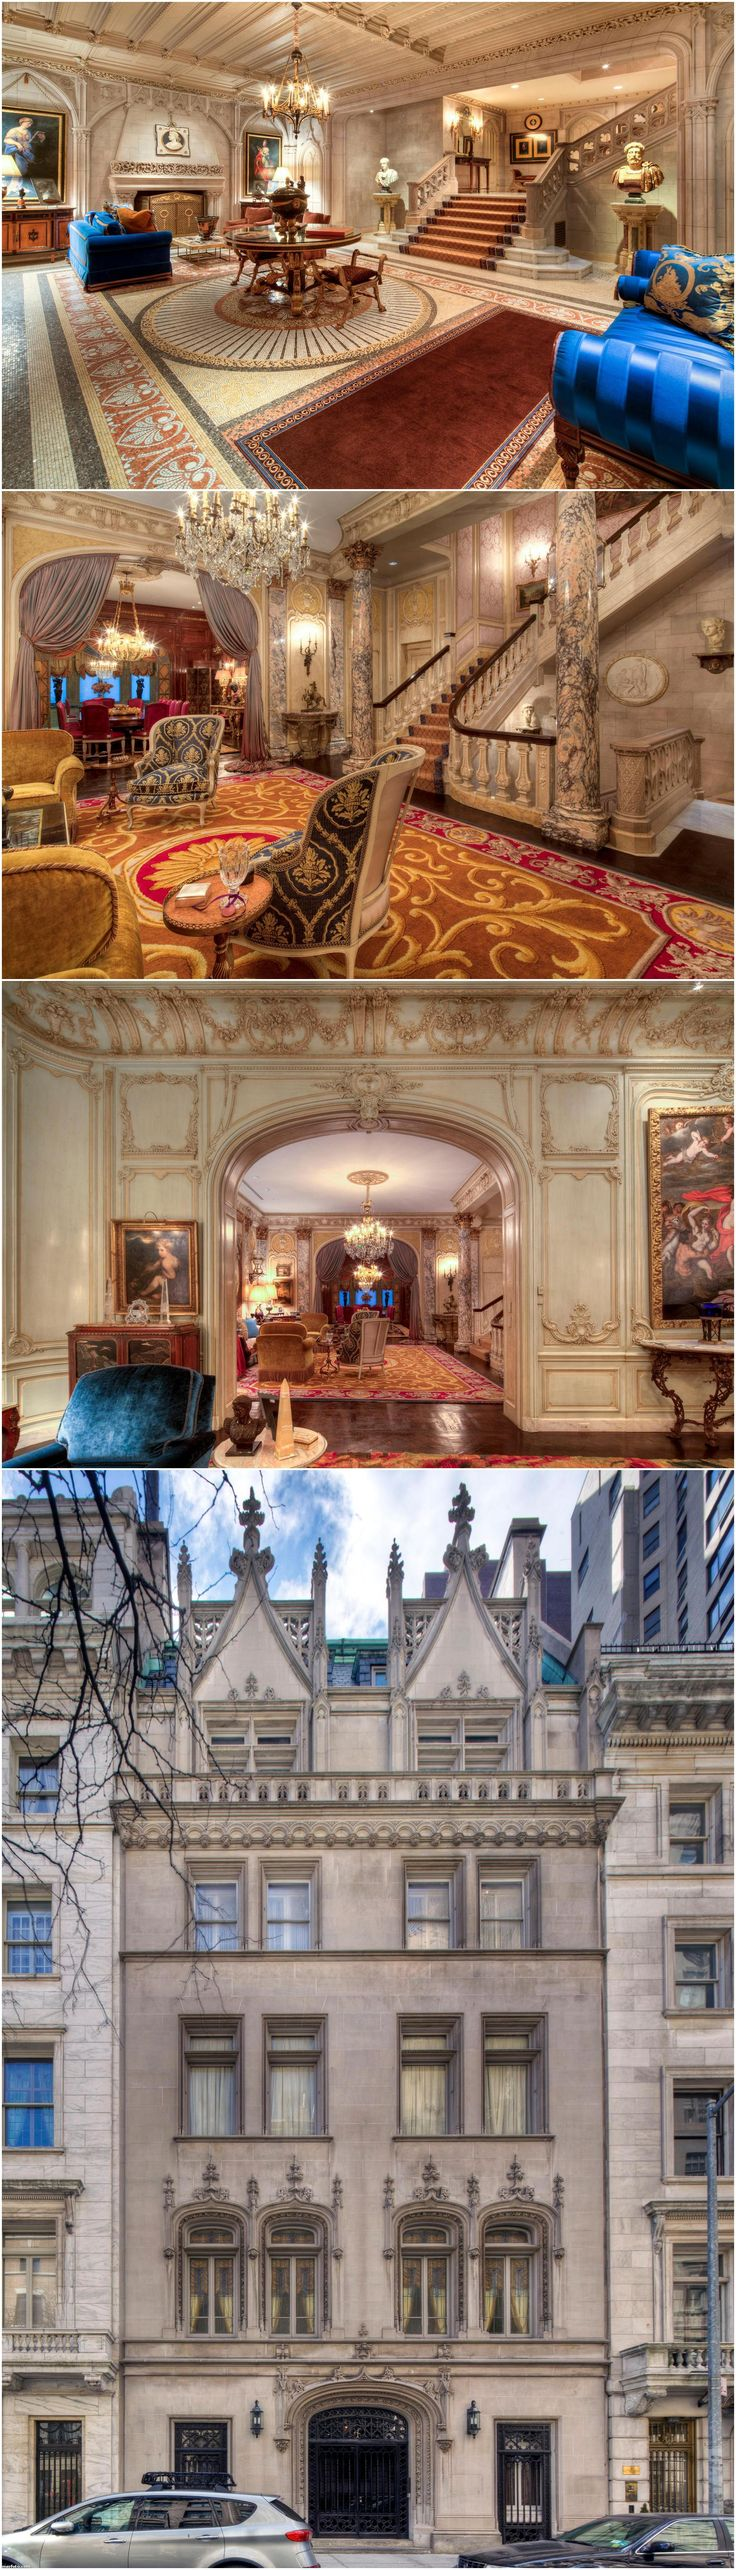 The Woolworth Mansion Off Fifth Avenue luxury property